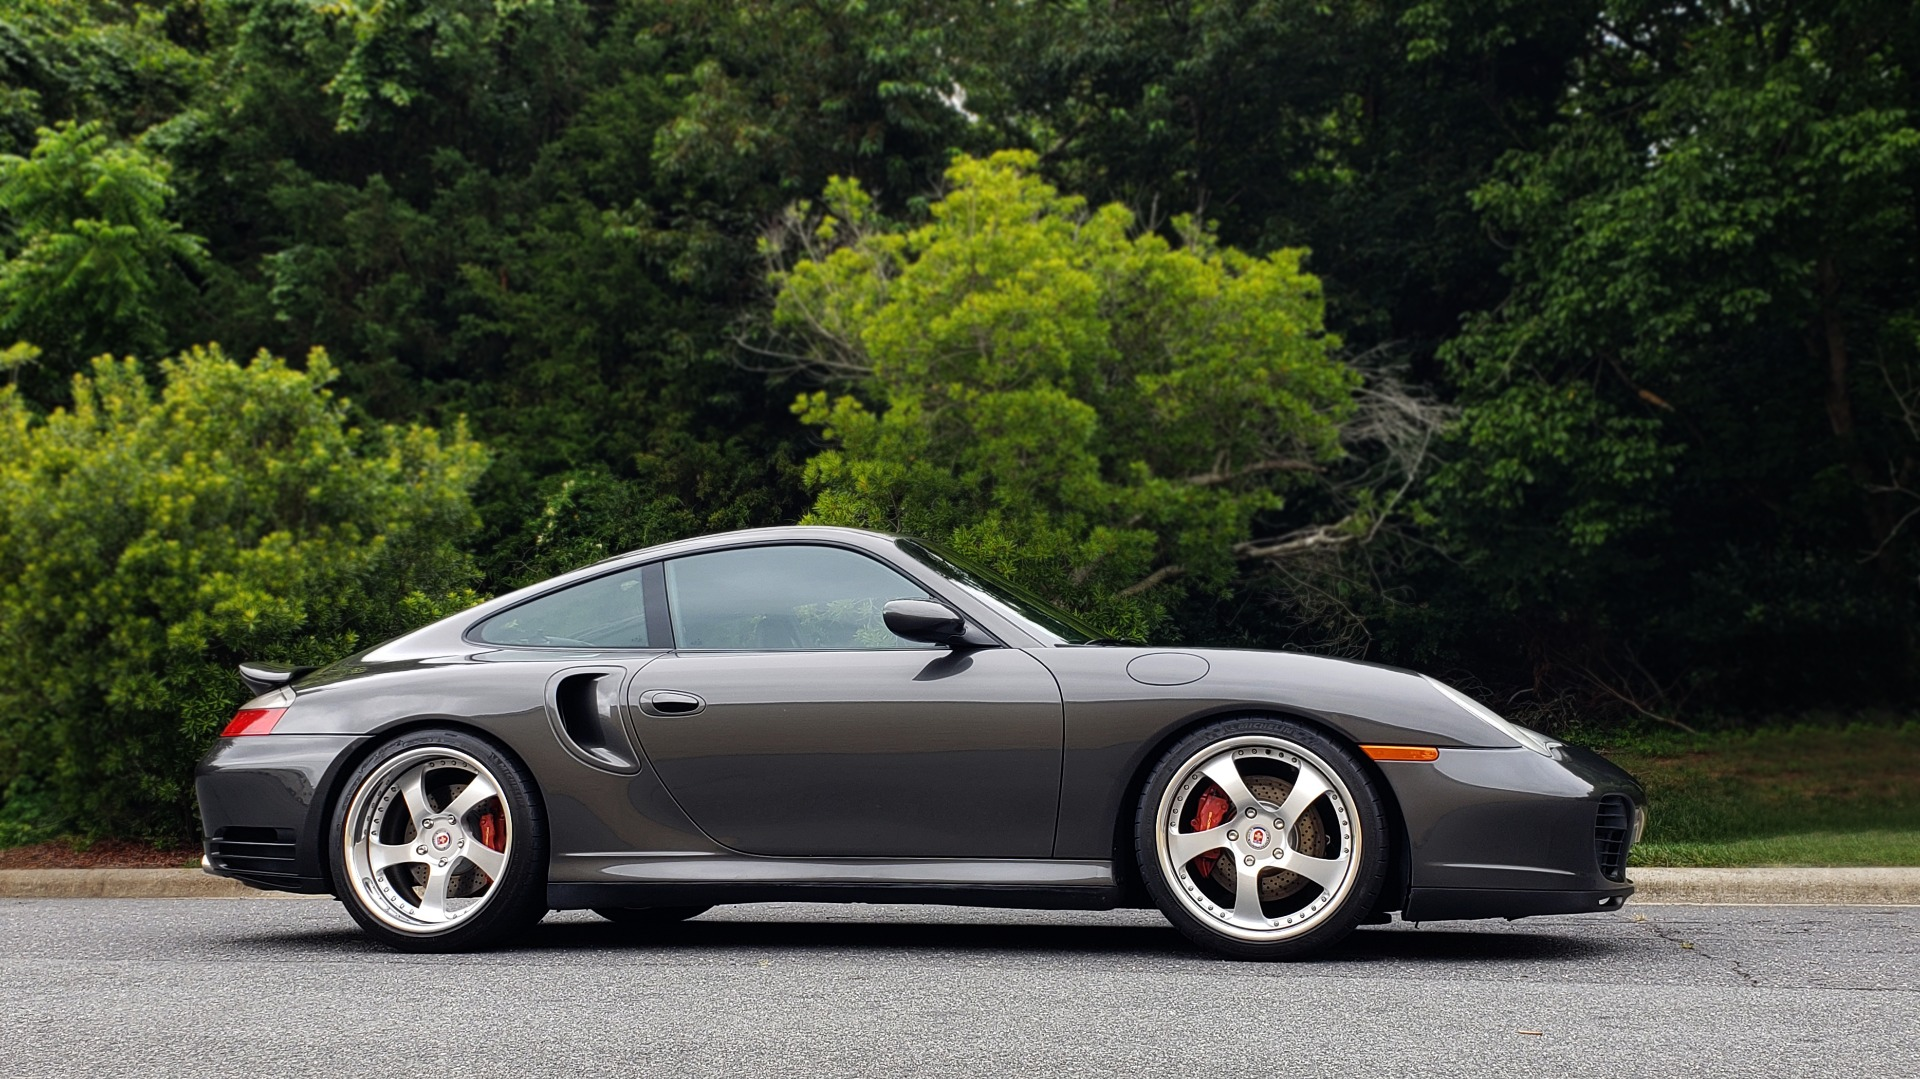 Used 2002 Porsche 911 CARRERA TURBO COUPE / 6-SPD MANUAL / PERF UPGRADES & CUSTOM TUNE for sale Sold at Formula Imports in Charlotte NC 28227 7